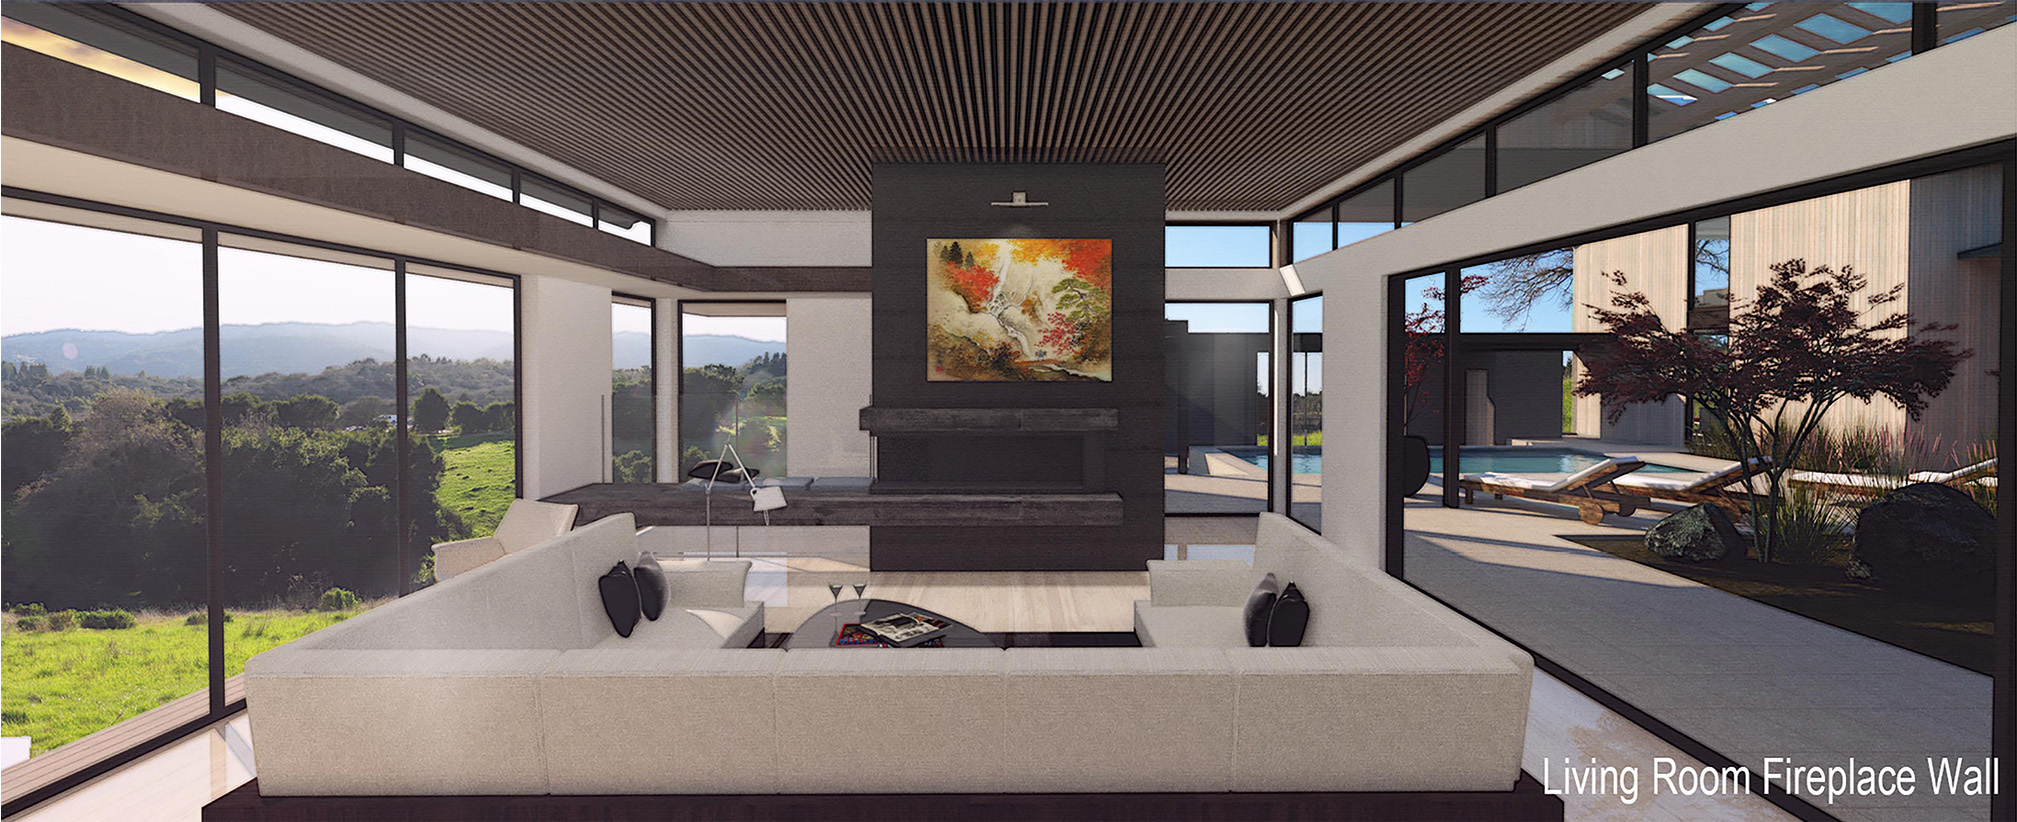 view living room_new.jpg